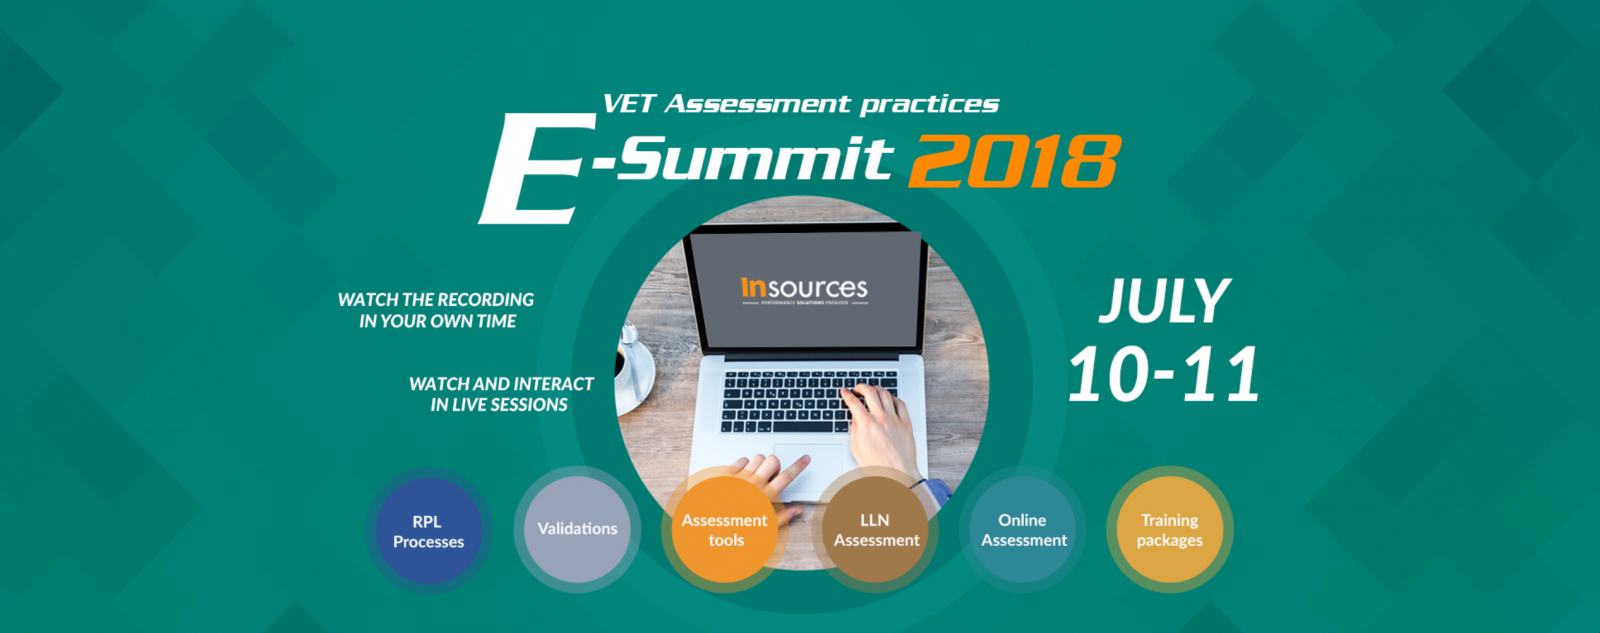 Insources - VET Assessment practices E-summit 2018